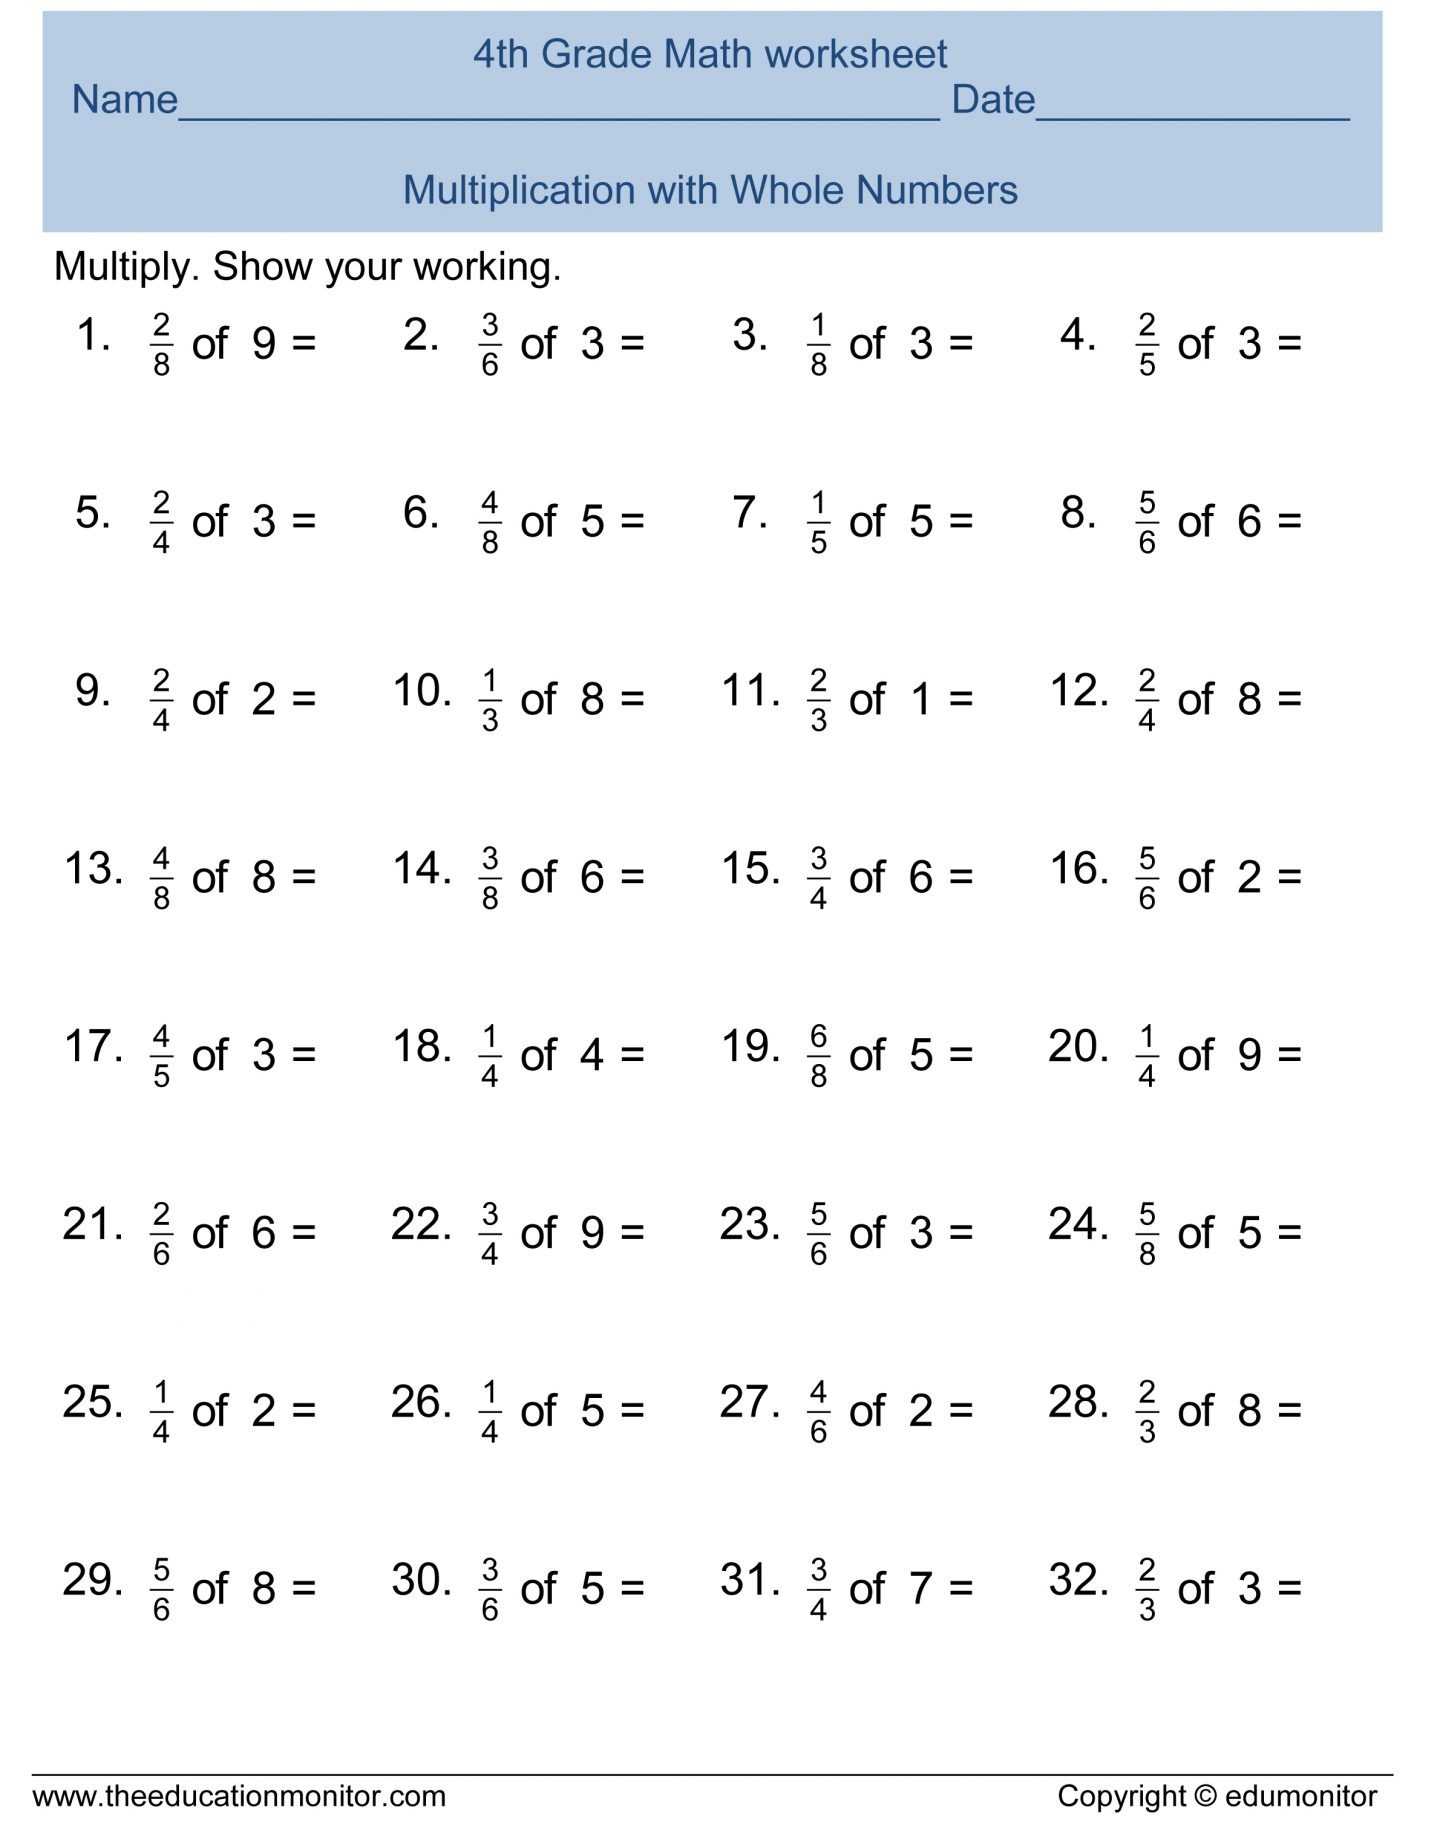 7Th Grade Math Worksheets Free Printable With Answers Stunning - 7Th | 7Th Grade Printable Worksheets